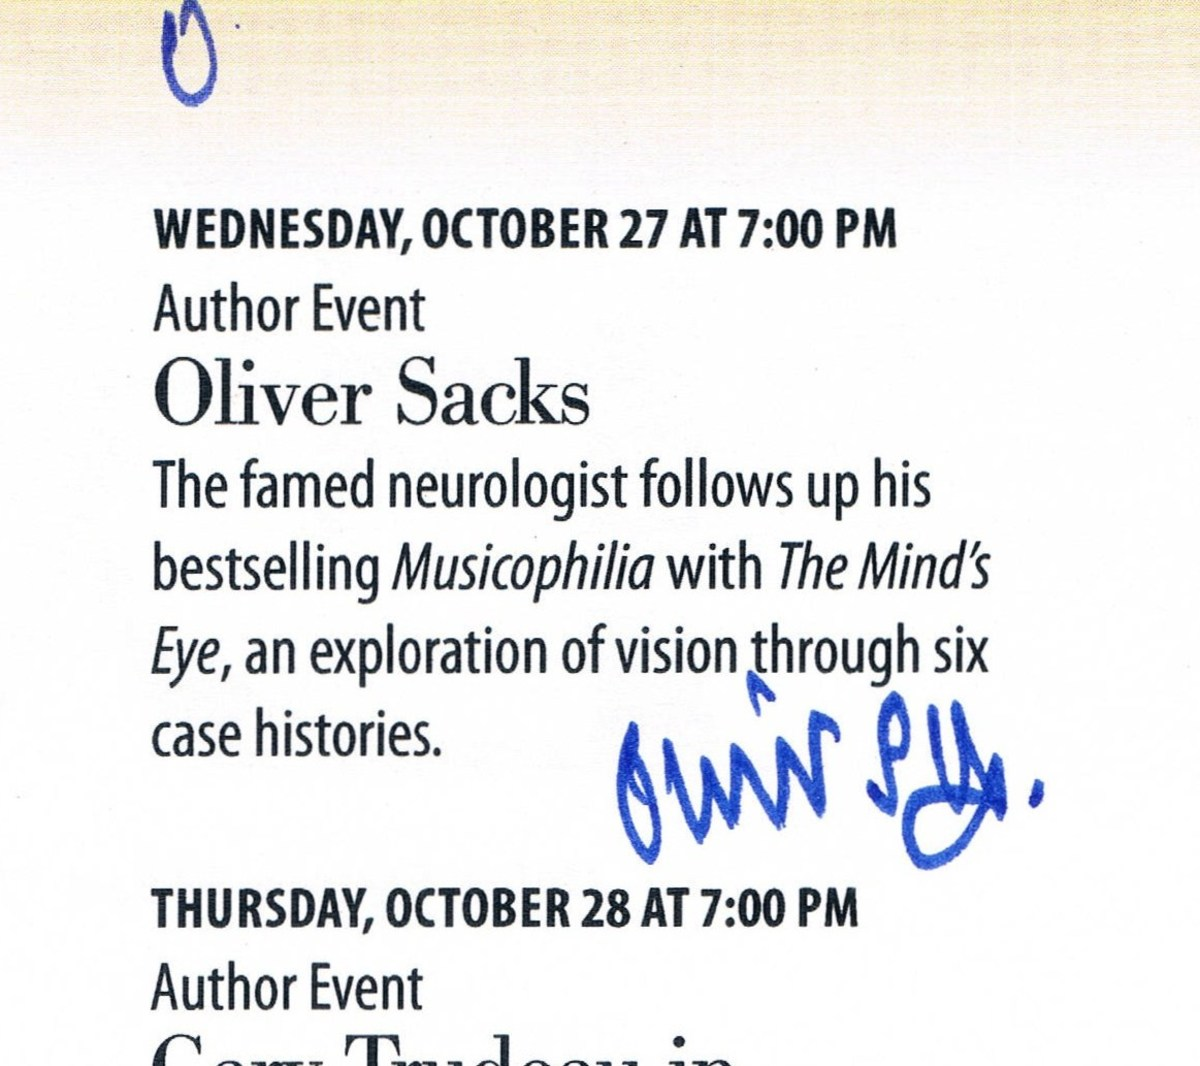 The last time I got Oliver Sacks autograph was at yet another talk of his at the Union Square Barnes & Noble, this time on October 27, 2010, at a talk about his current book, The Minds Eye.